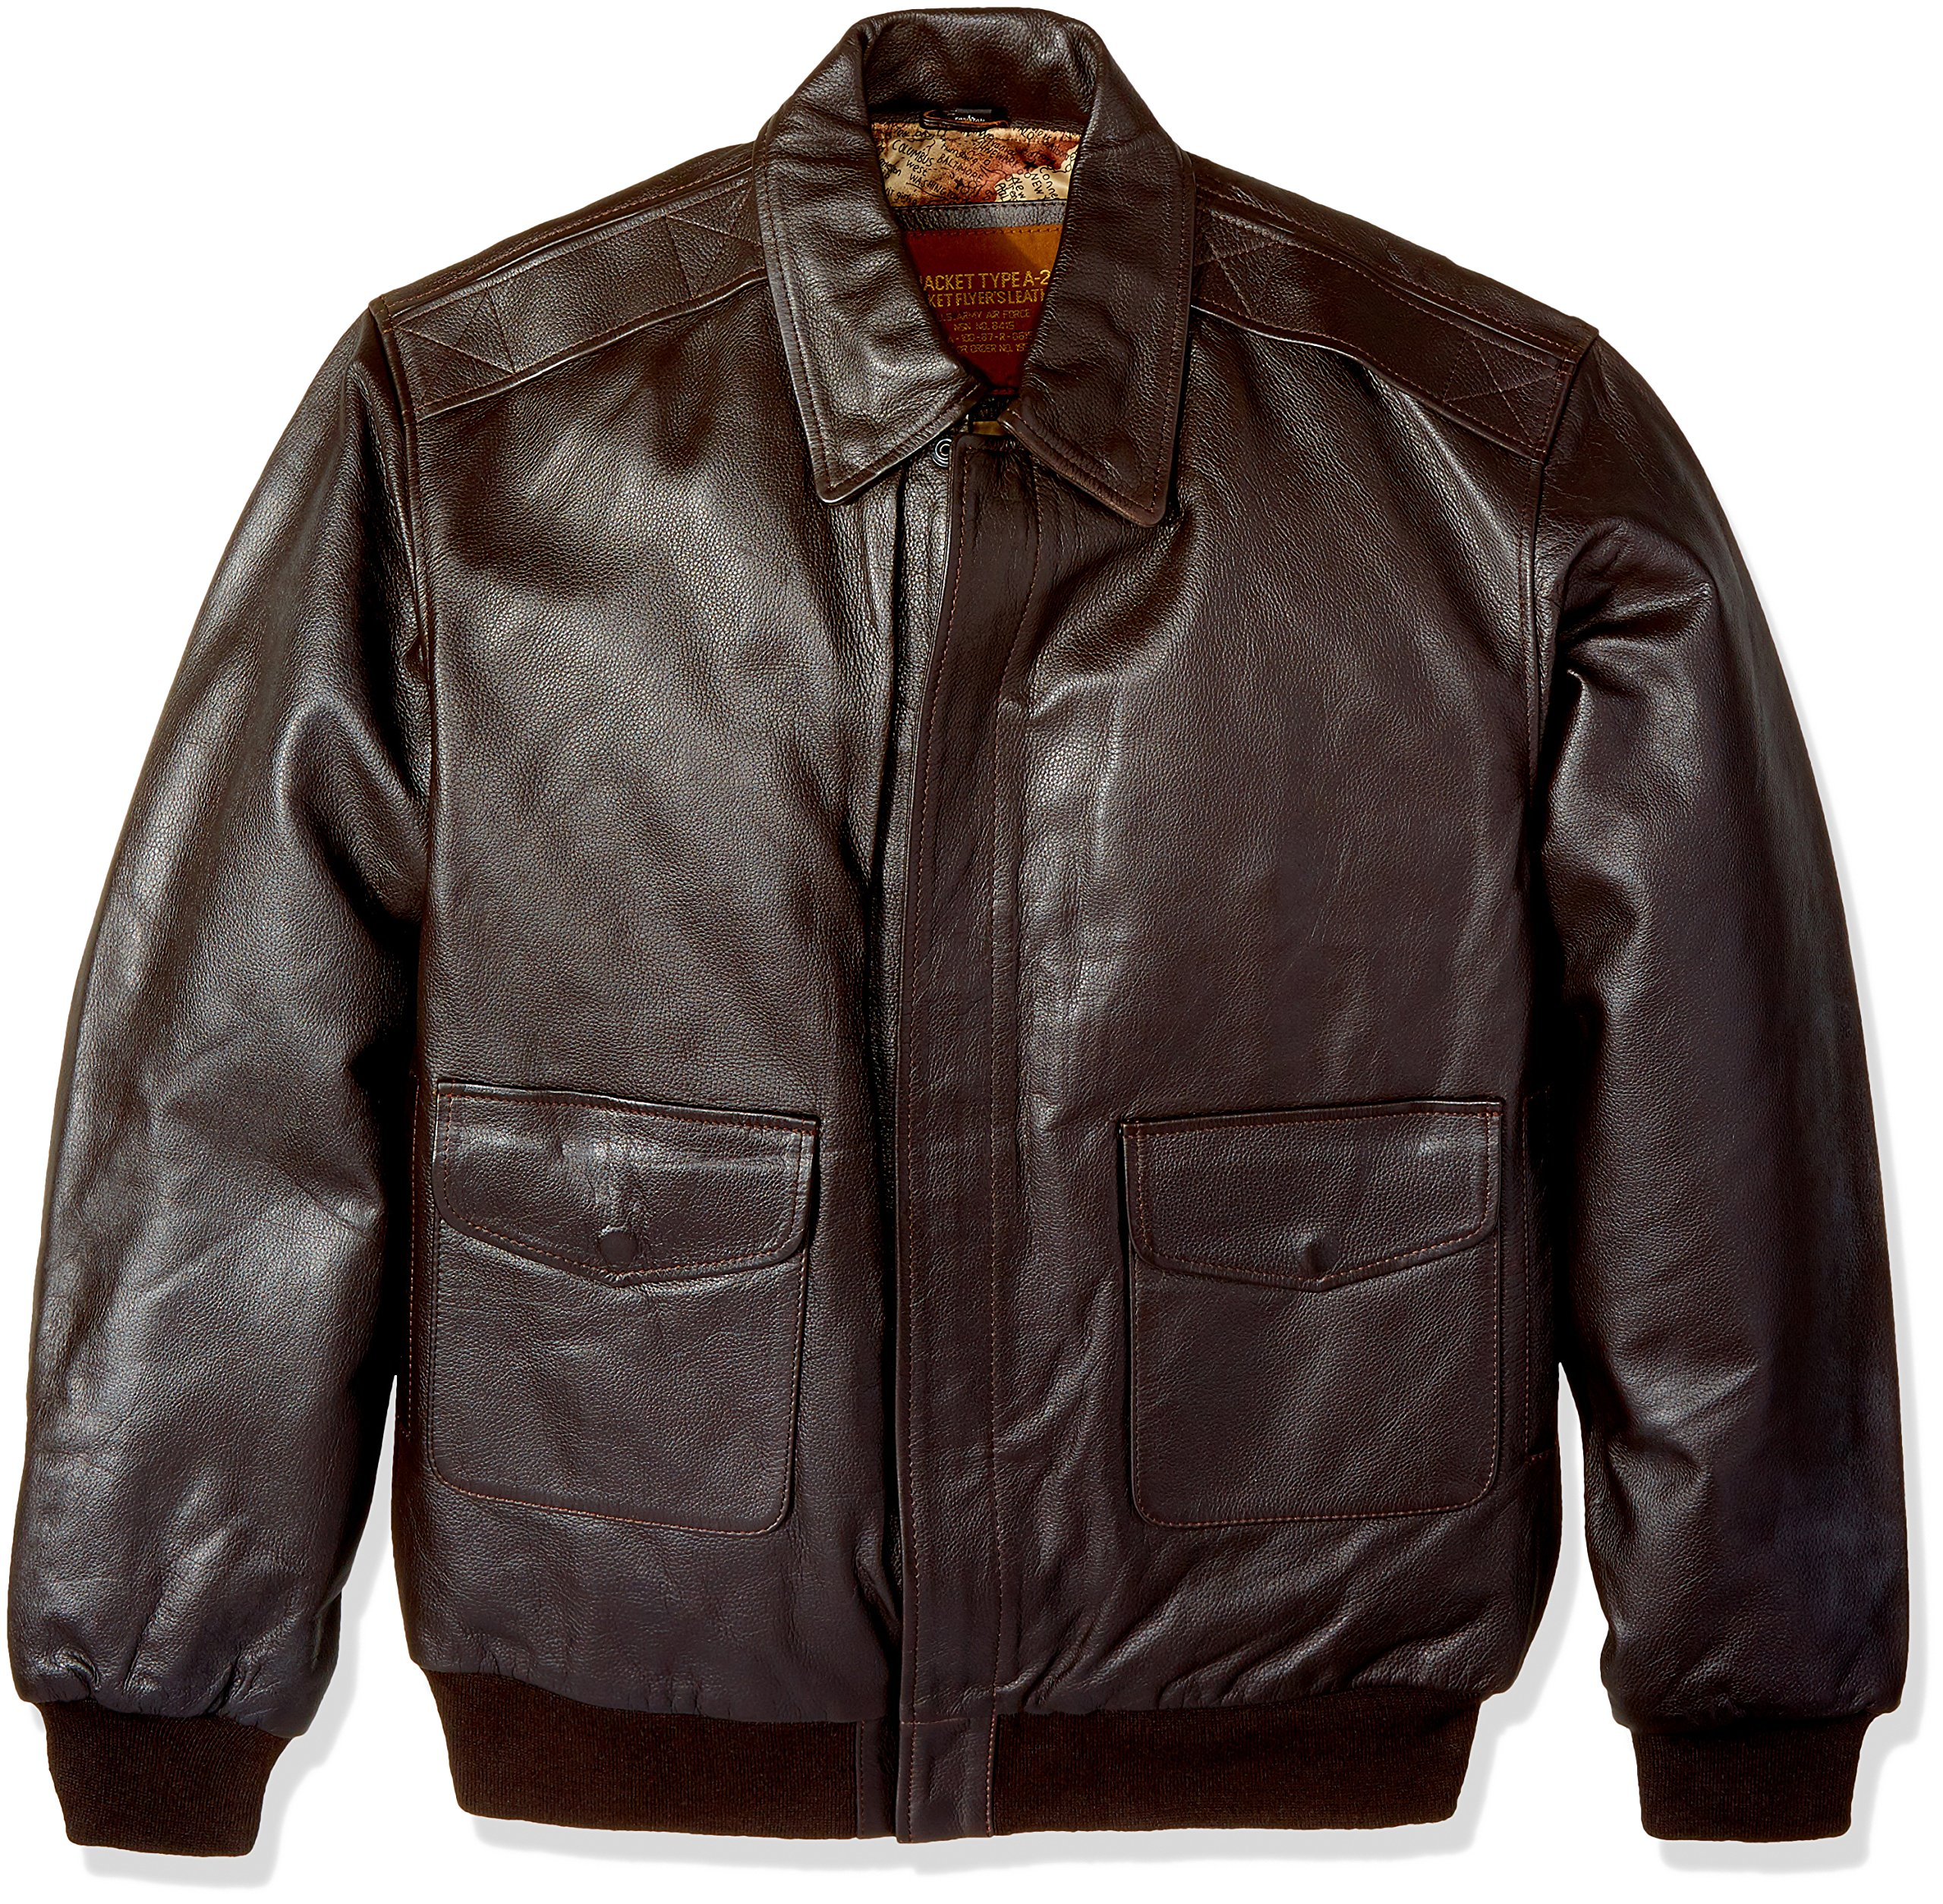 Excelled Men's Big and Tall Leather Flight Jacket, Brown, 4XL